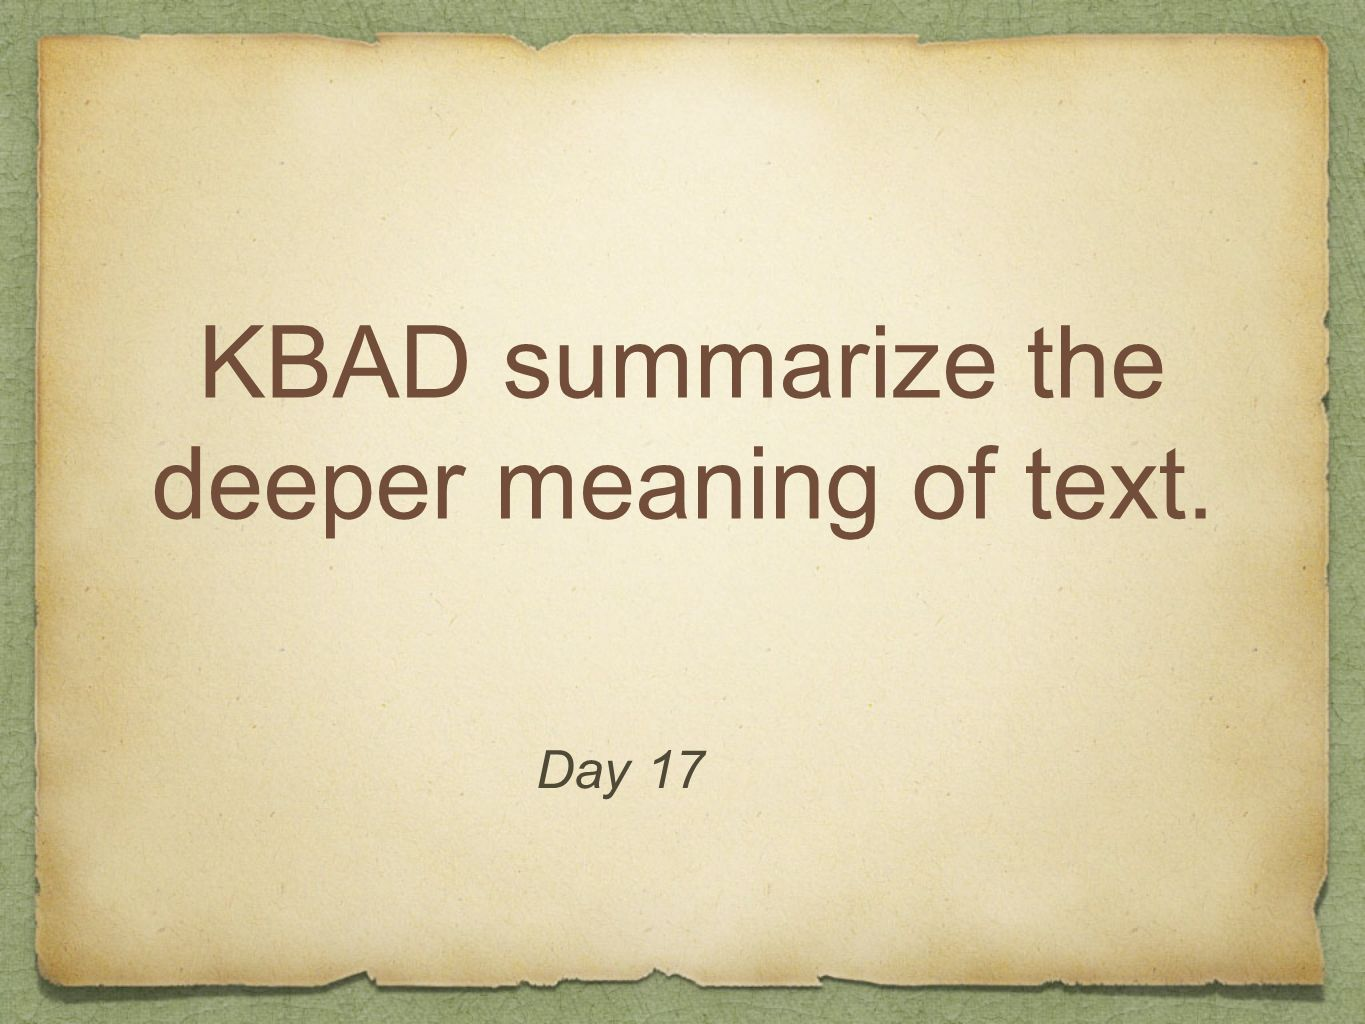 KBAD summarize the deeper meaning of text.